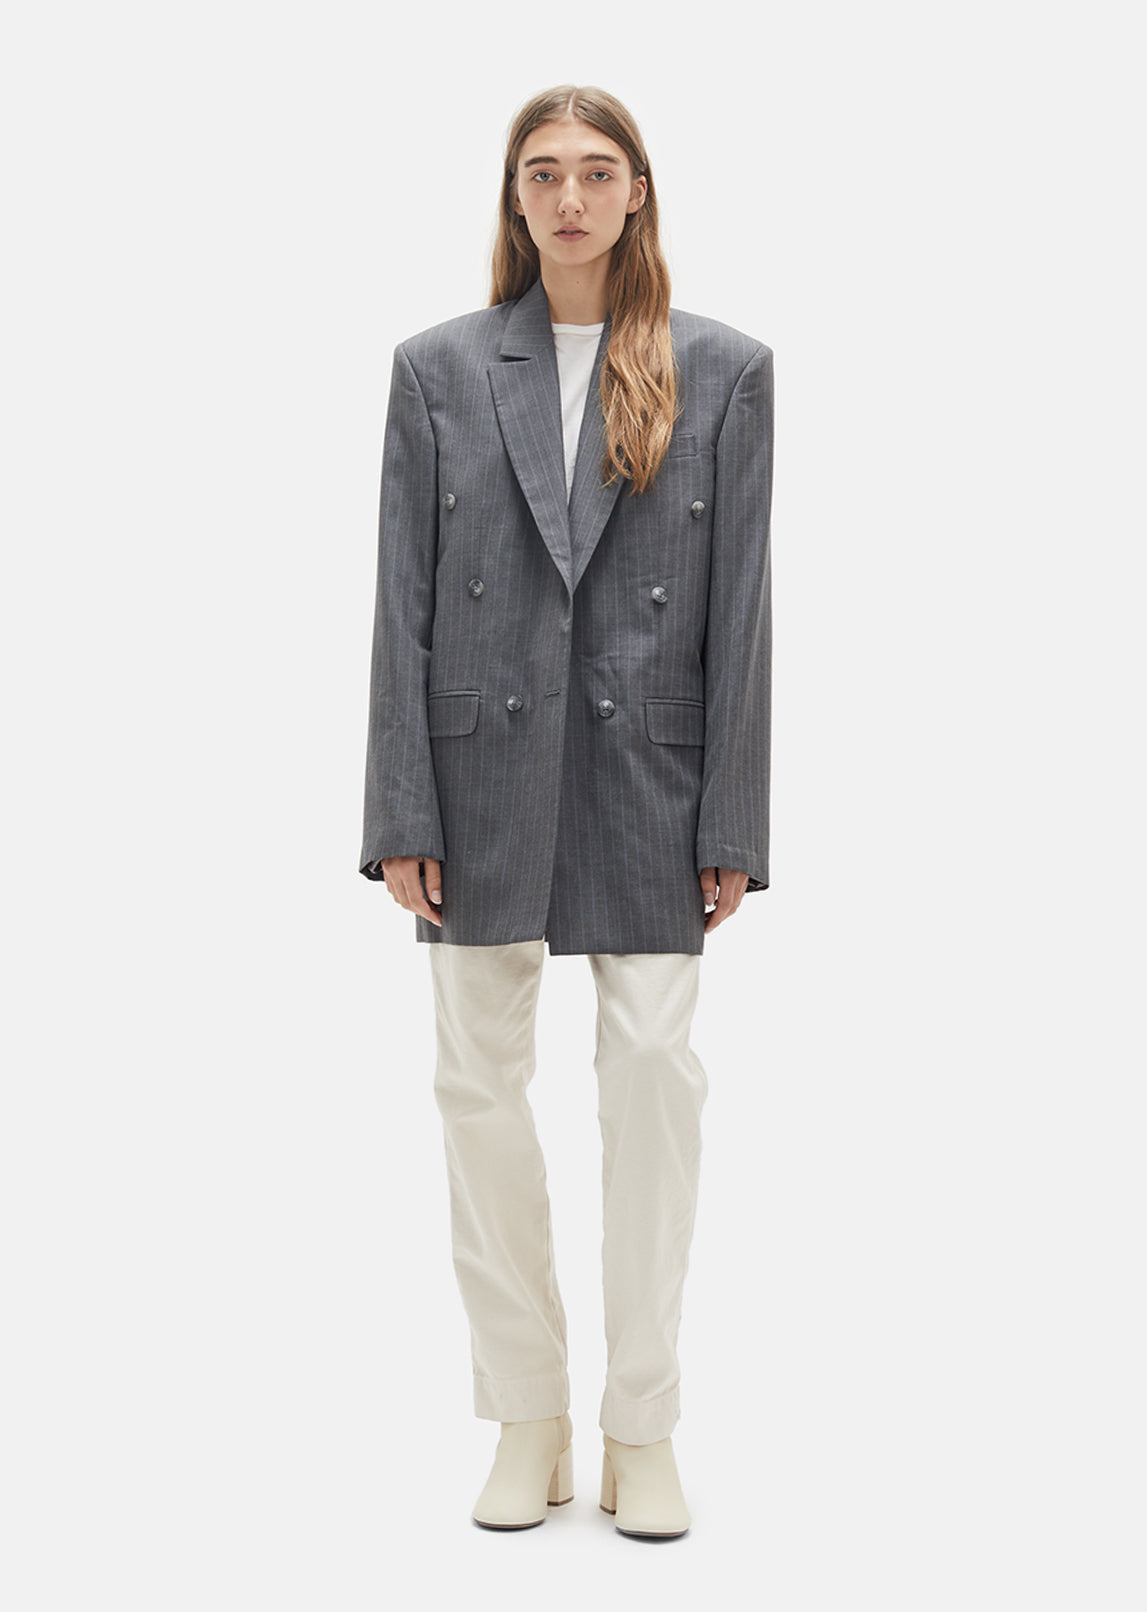 Low Break Double Breasted Unisex Blazer